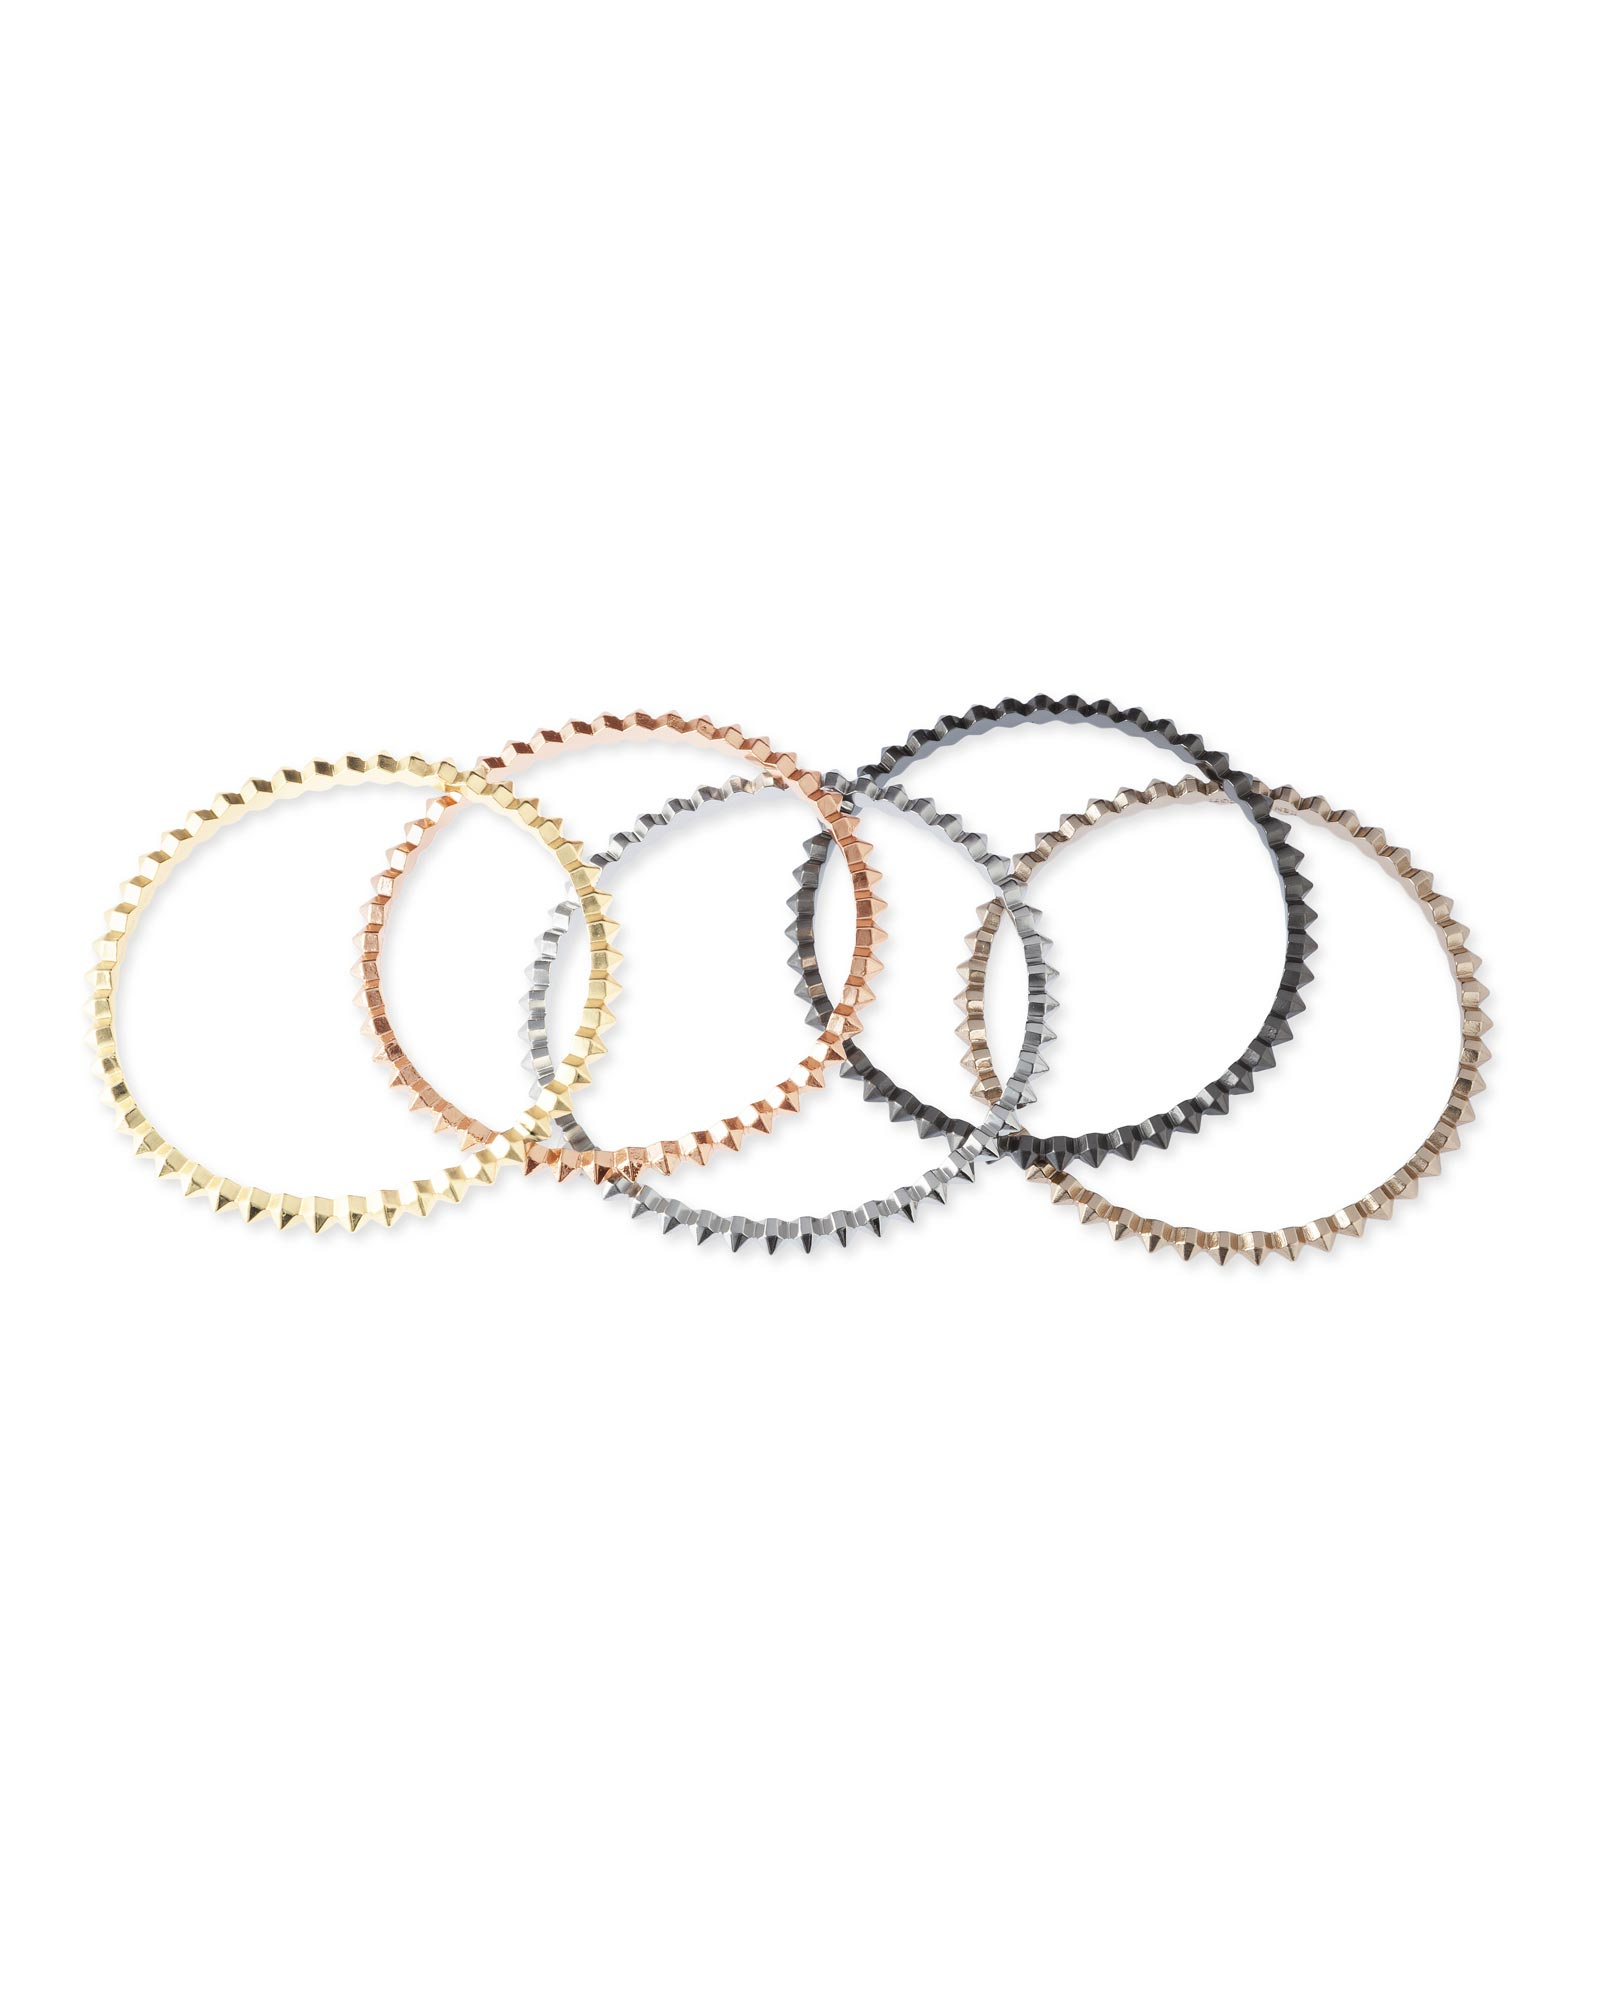 Remy Bangle Bracelets in Mixed Metals